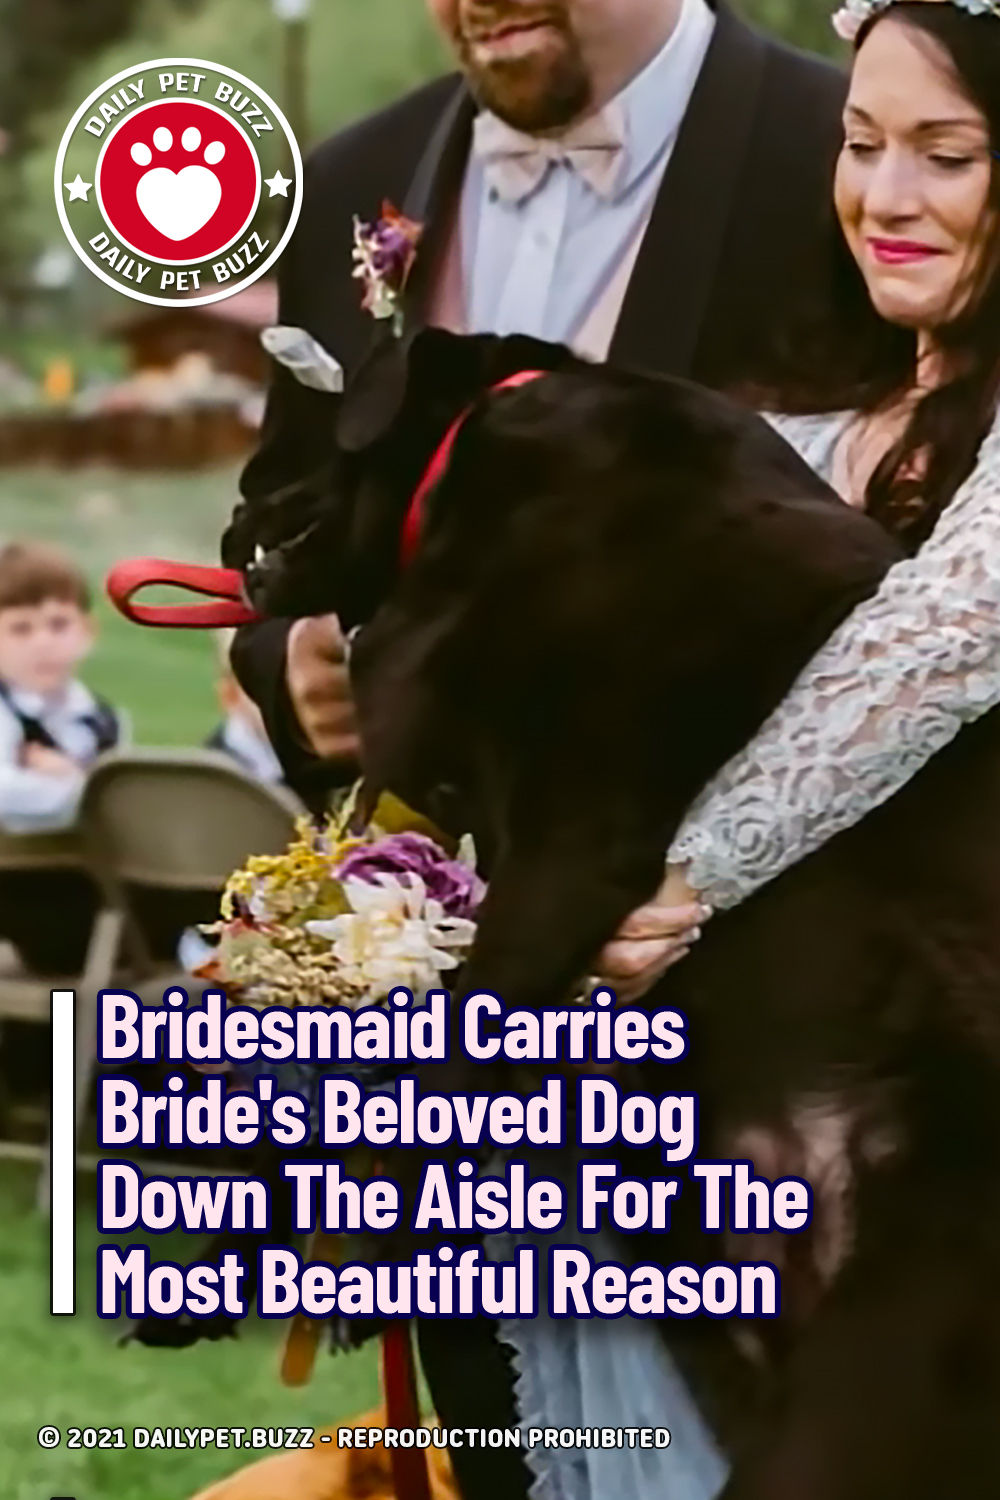 Bridesmaid Carries Bride\'s Beloved Dog Down The Aisle For The Most Beautiful Reason